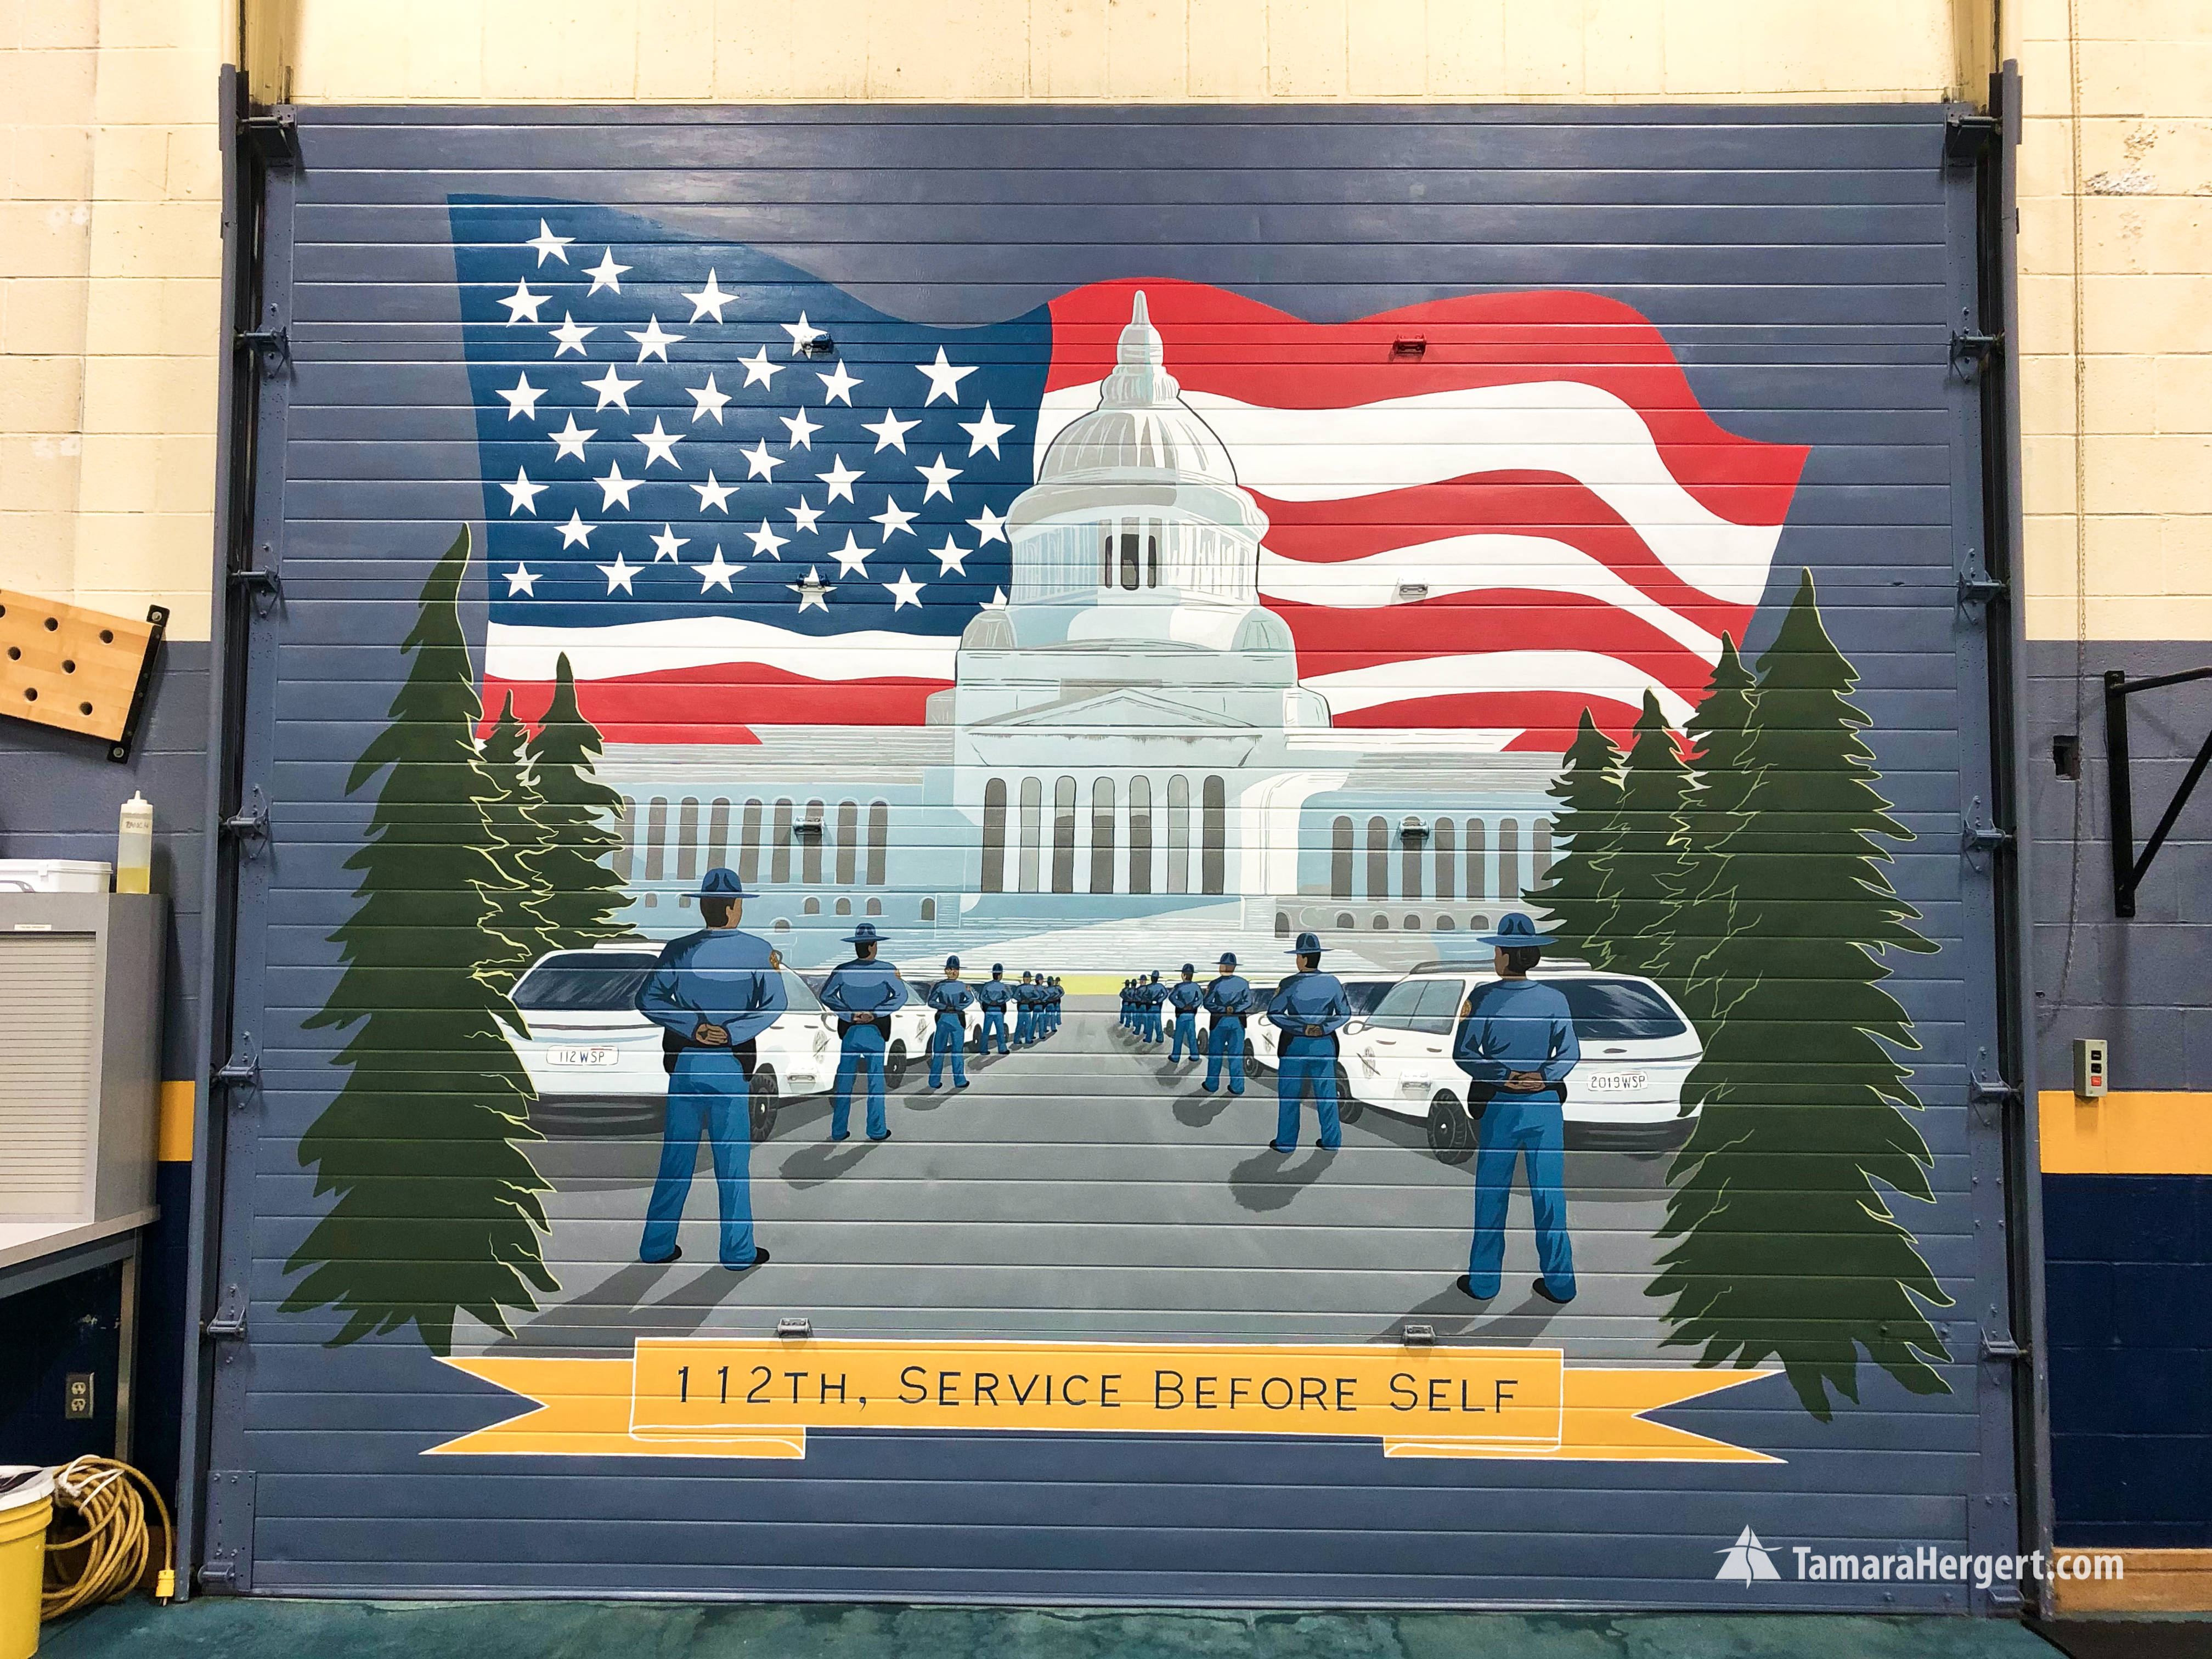 Washington State Patrol Academy mural by